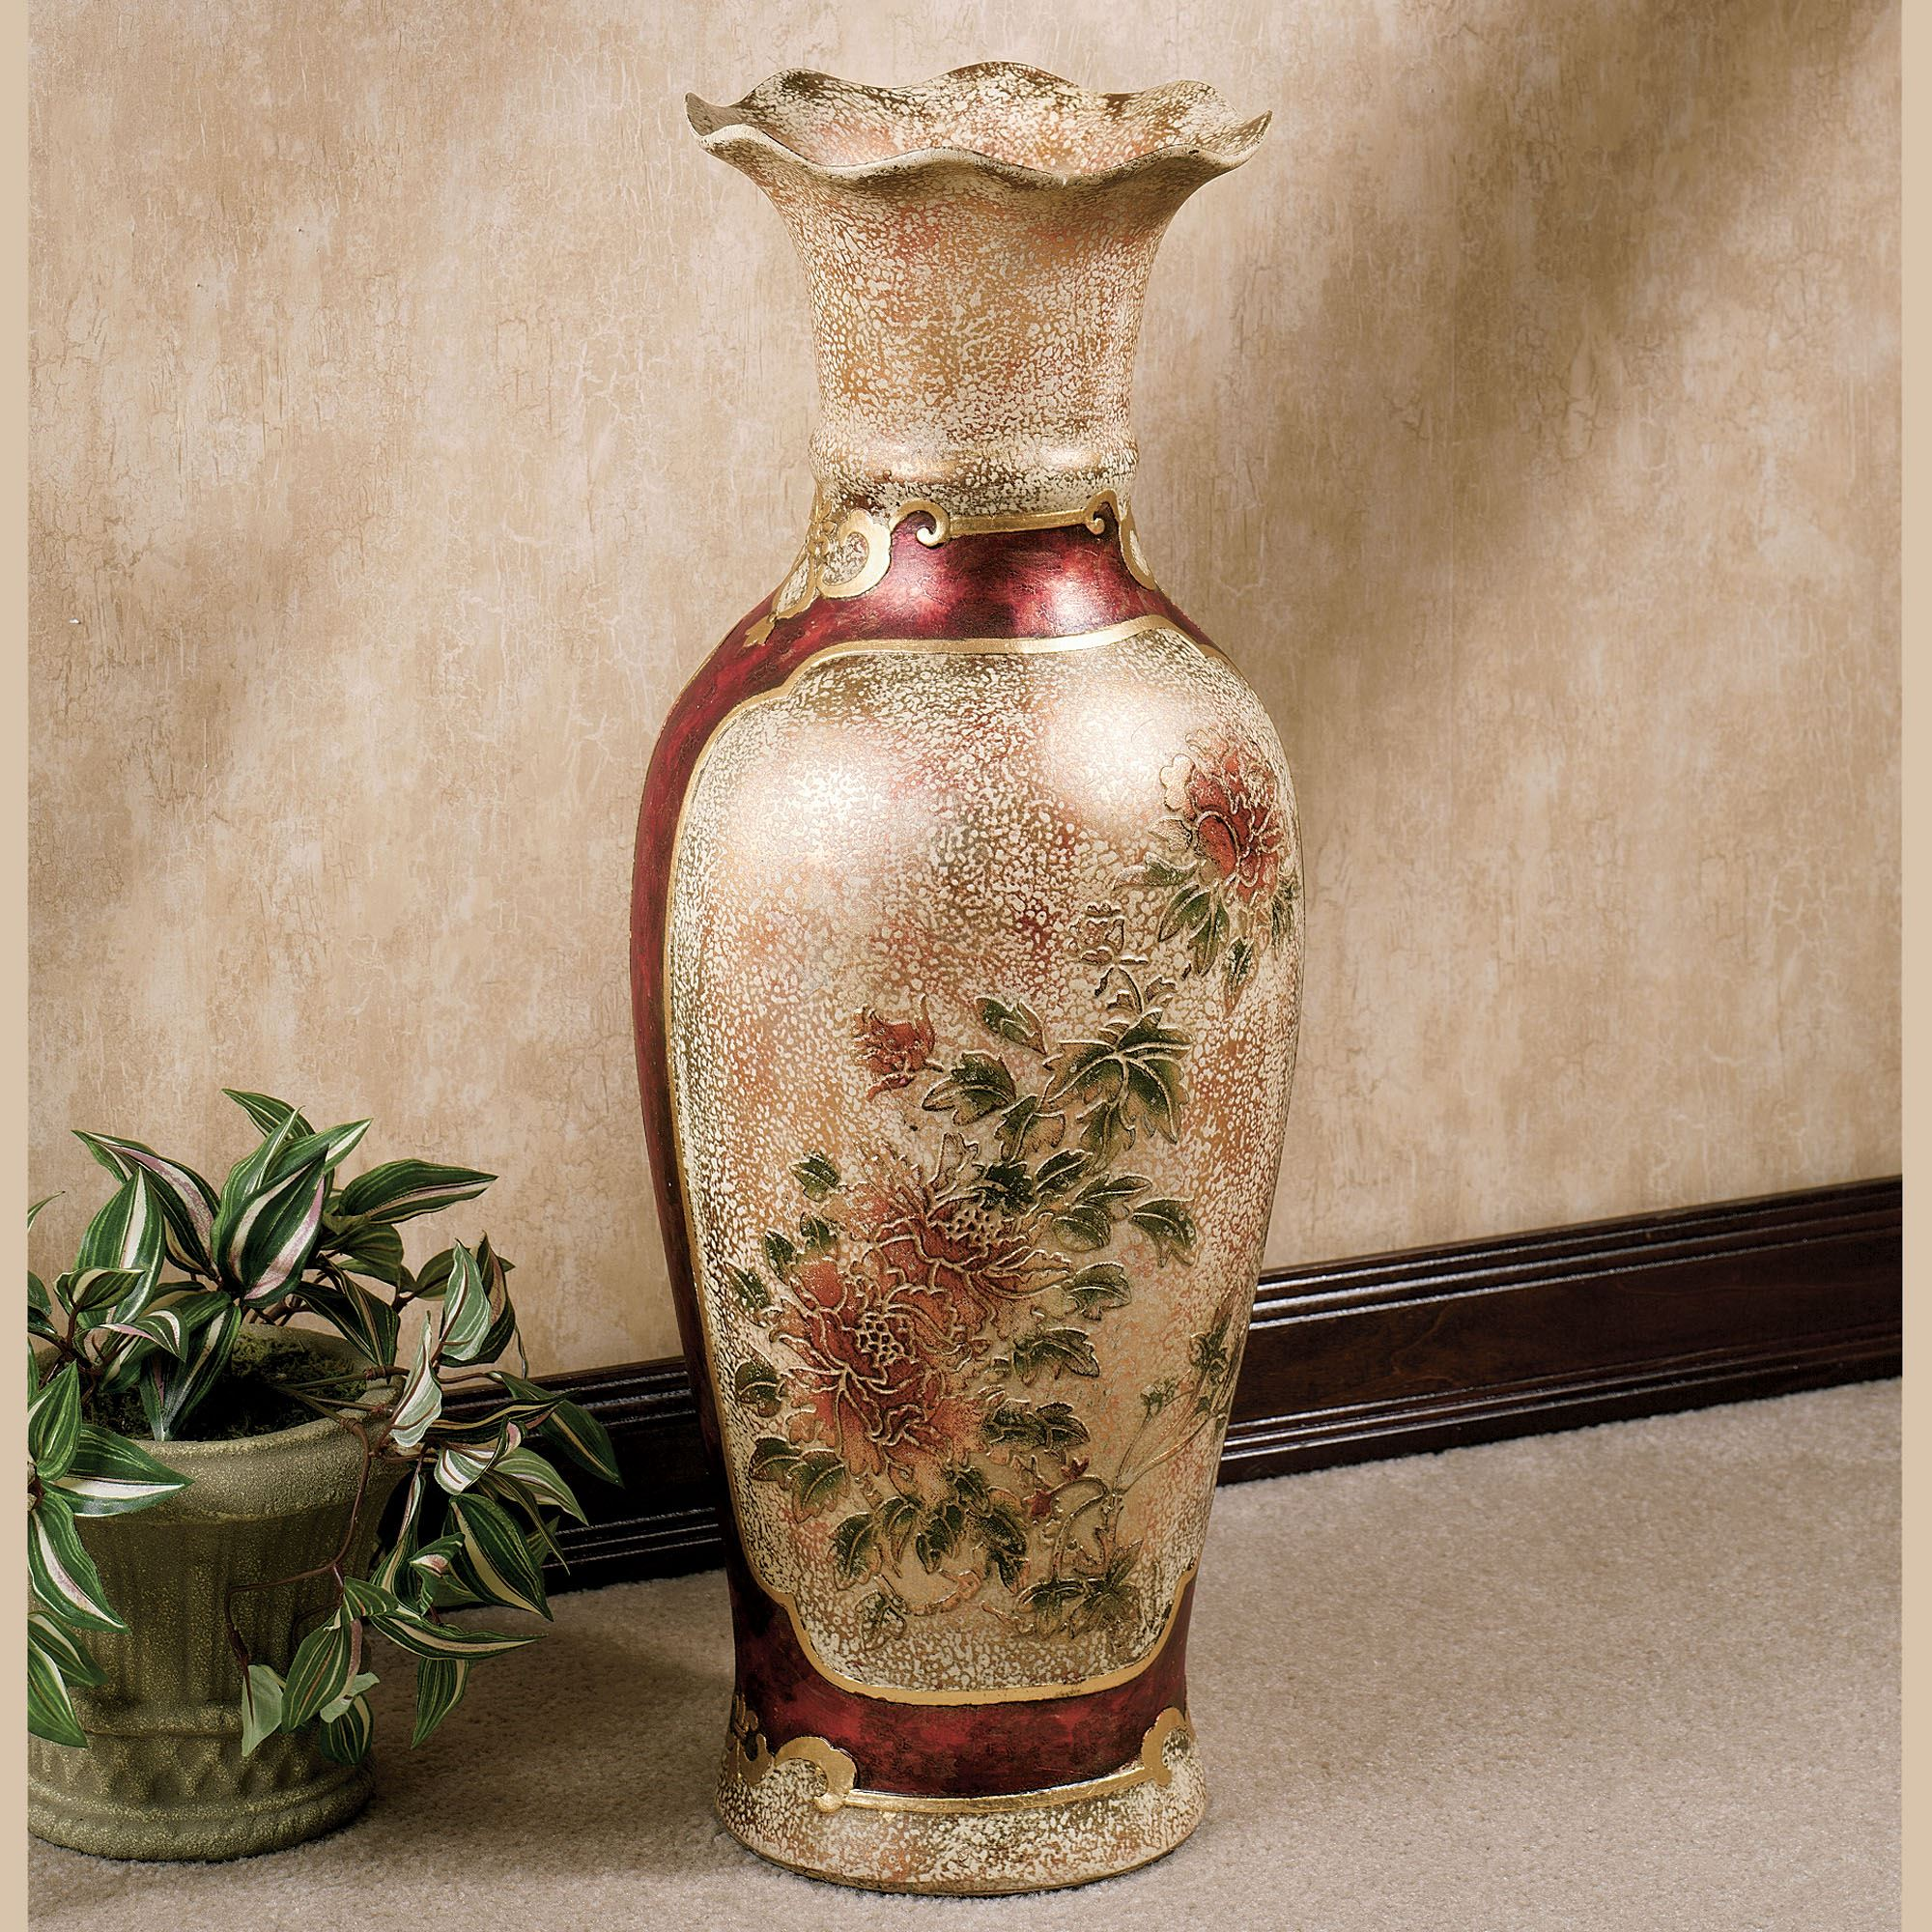 large vases, asian paintings, oriental style vases, asian bamboo, japanese tall vases, tall clay vases, big decorative vases, oversized vases, asian bowls, vintage glass vases, asian clothing, asian clocks, asian floor beds, asian mirrors, asian lamps, oriental porcelain vases, on floor vase asian